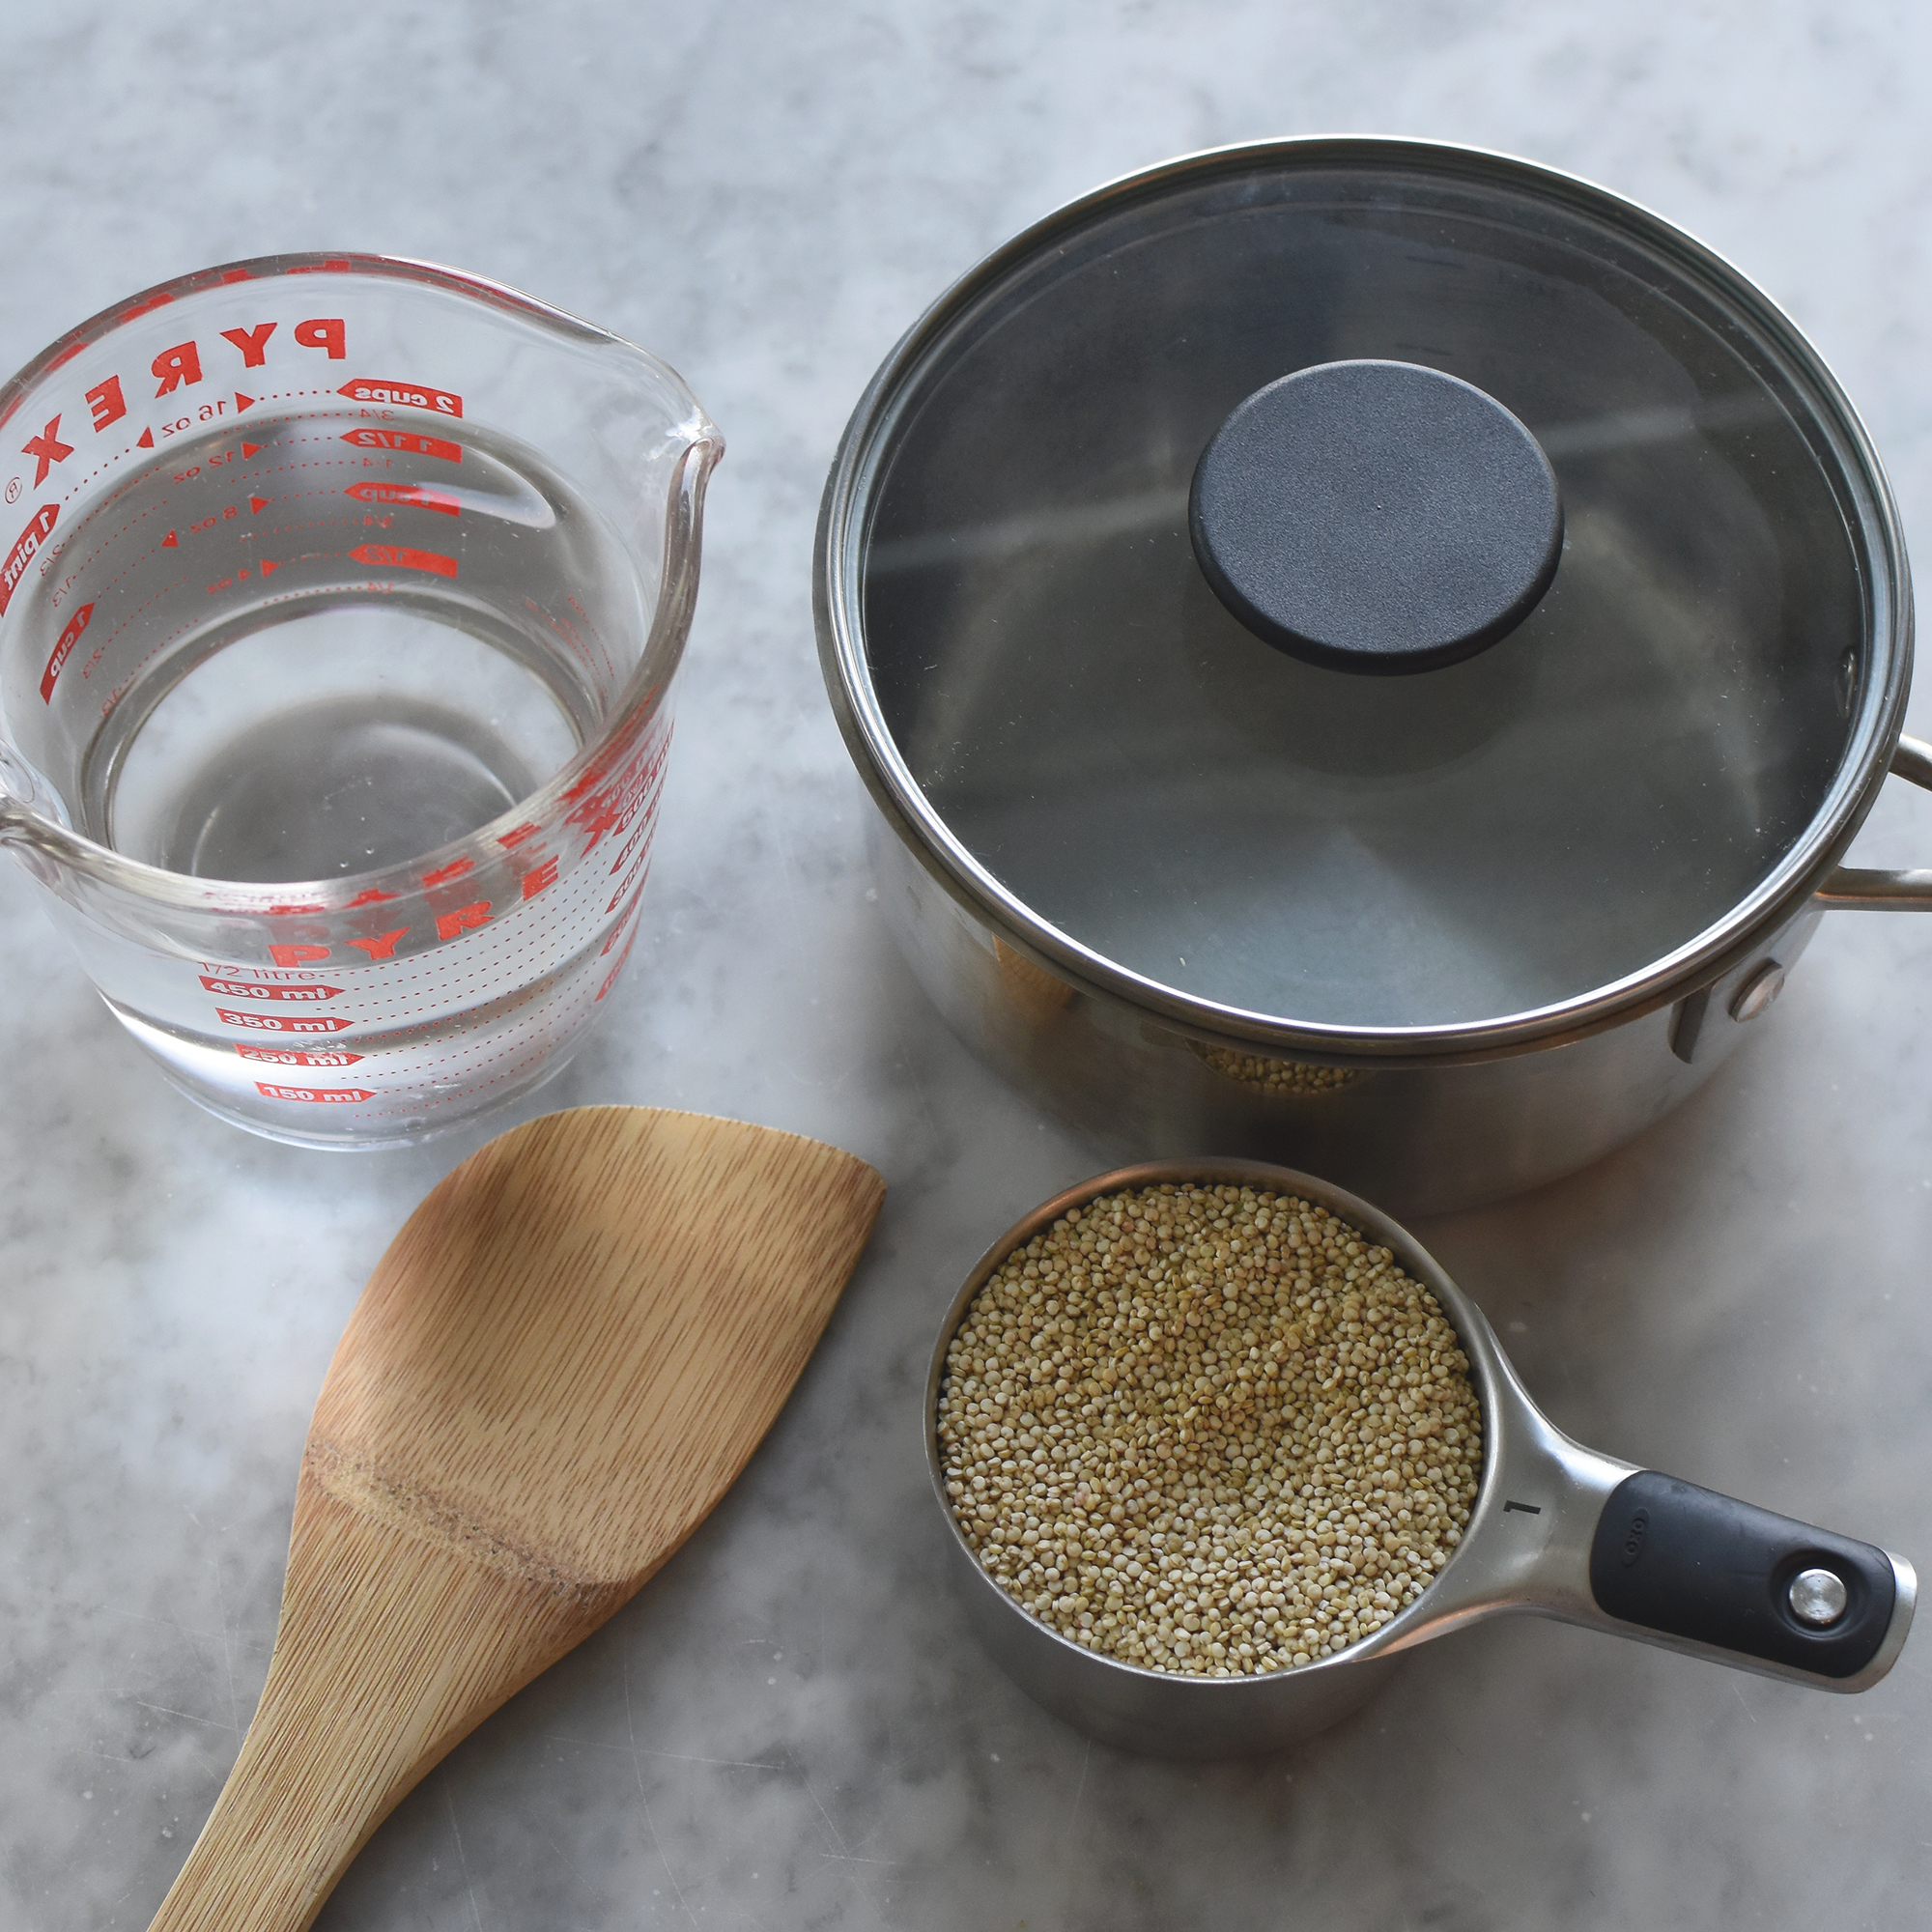 ingredients for cooking quinoa